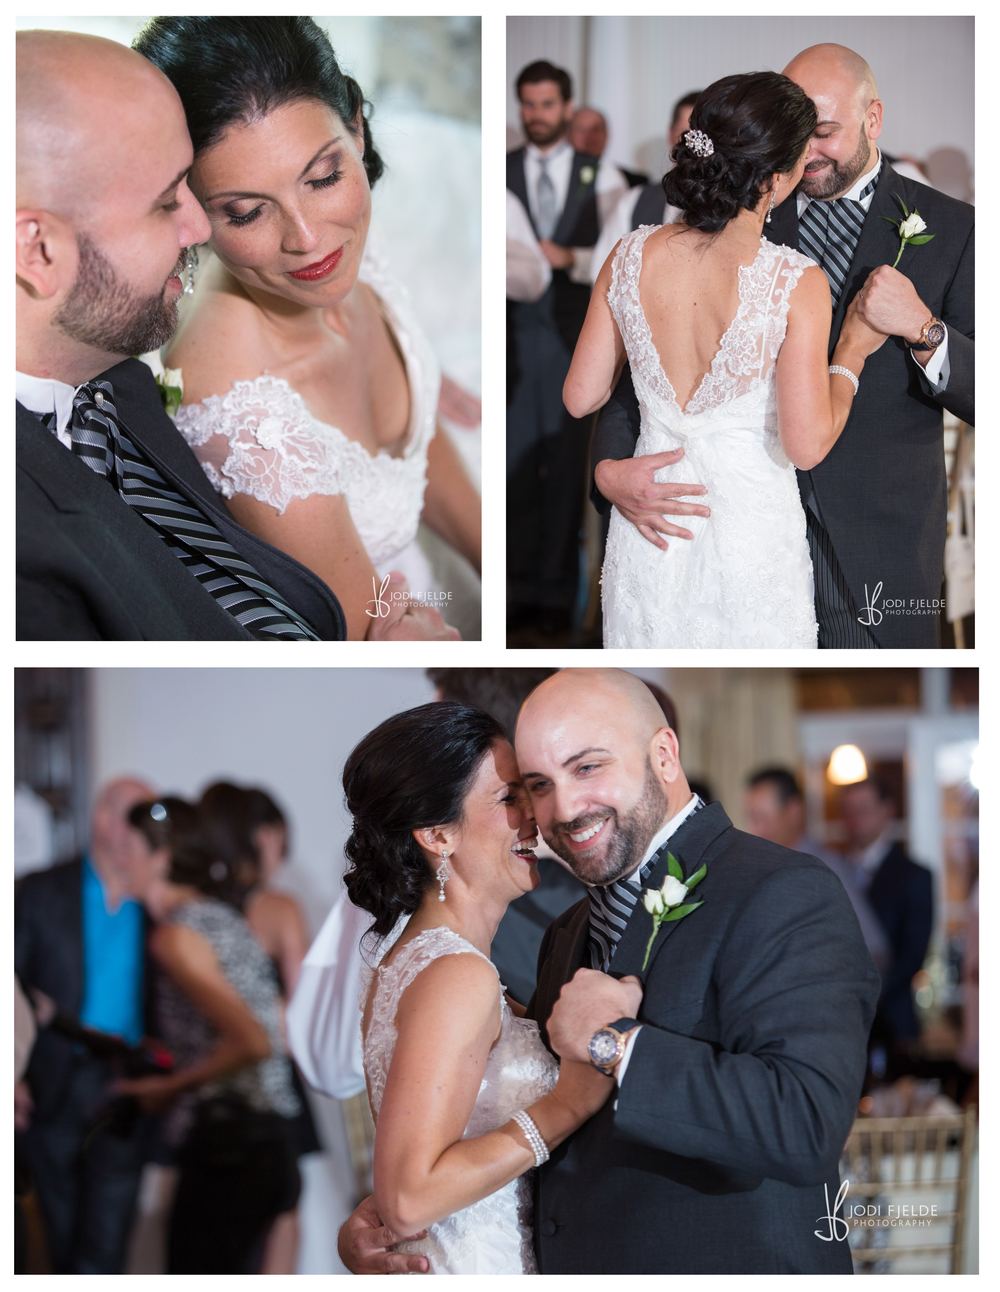 Highland_Manor_Apopka_Florida_wedding_Jackie_&_Tim_photography_jodi_Fjelde_photography-28.jpg